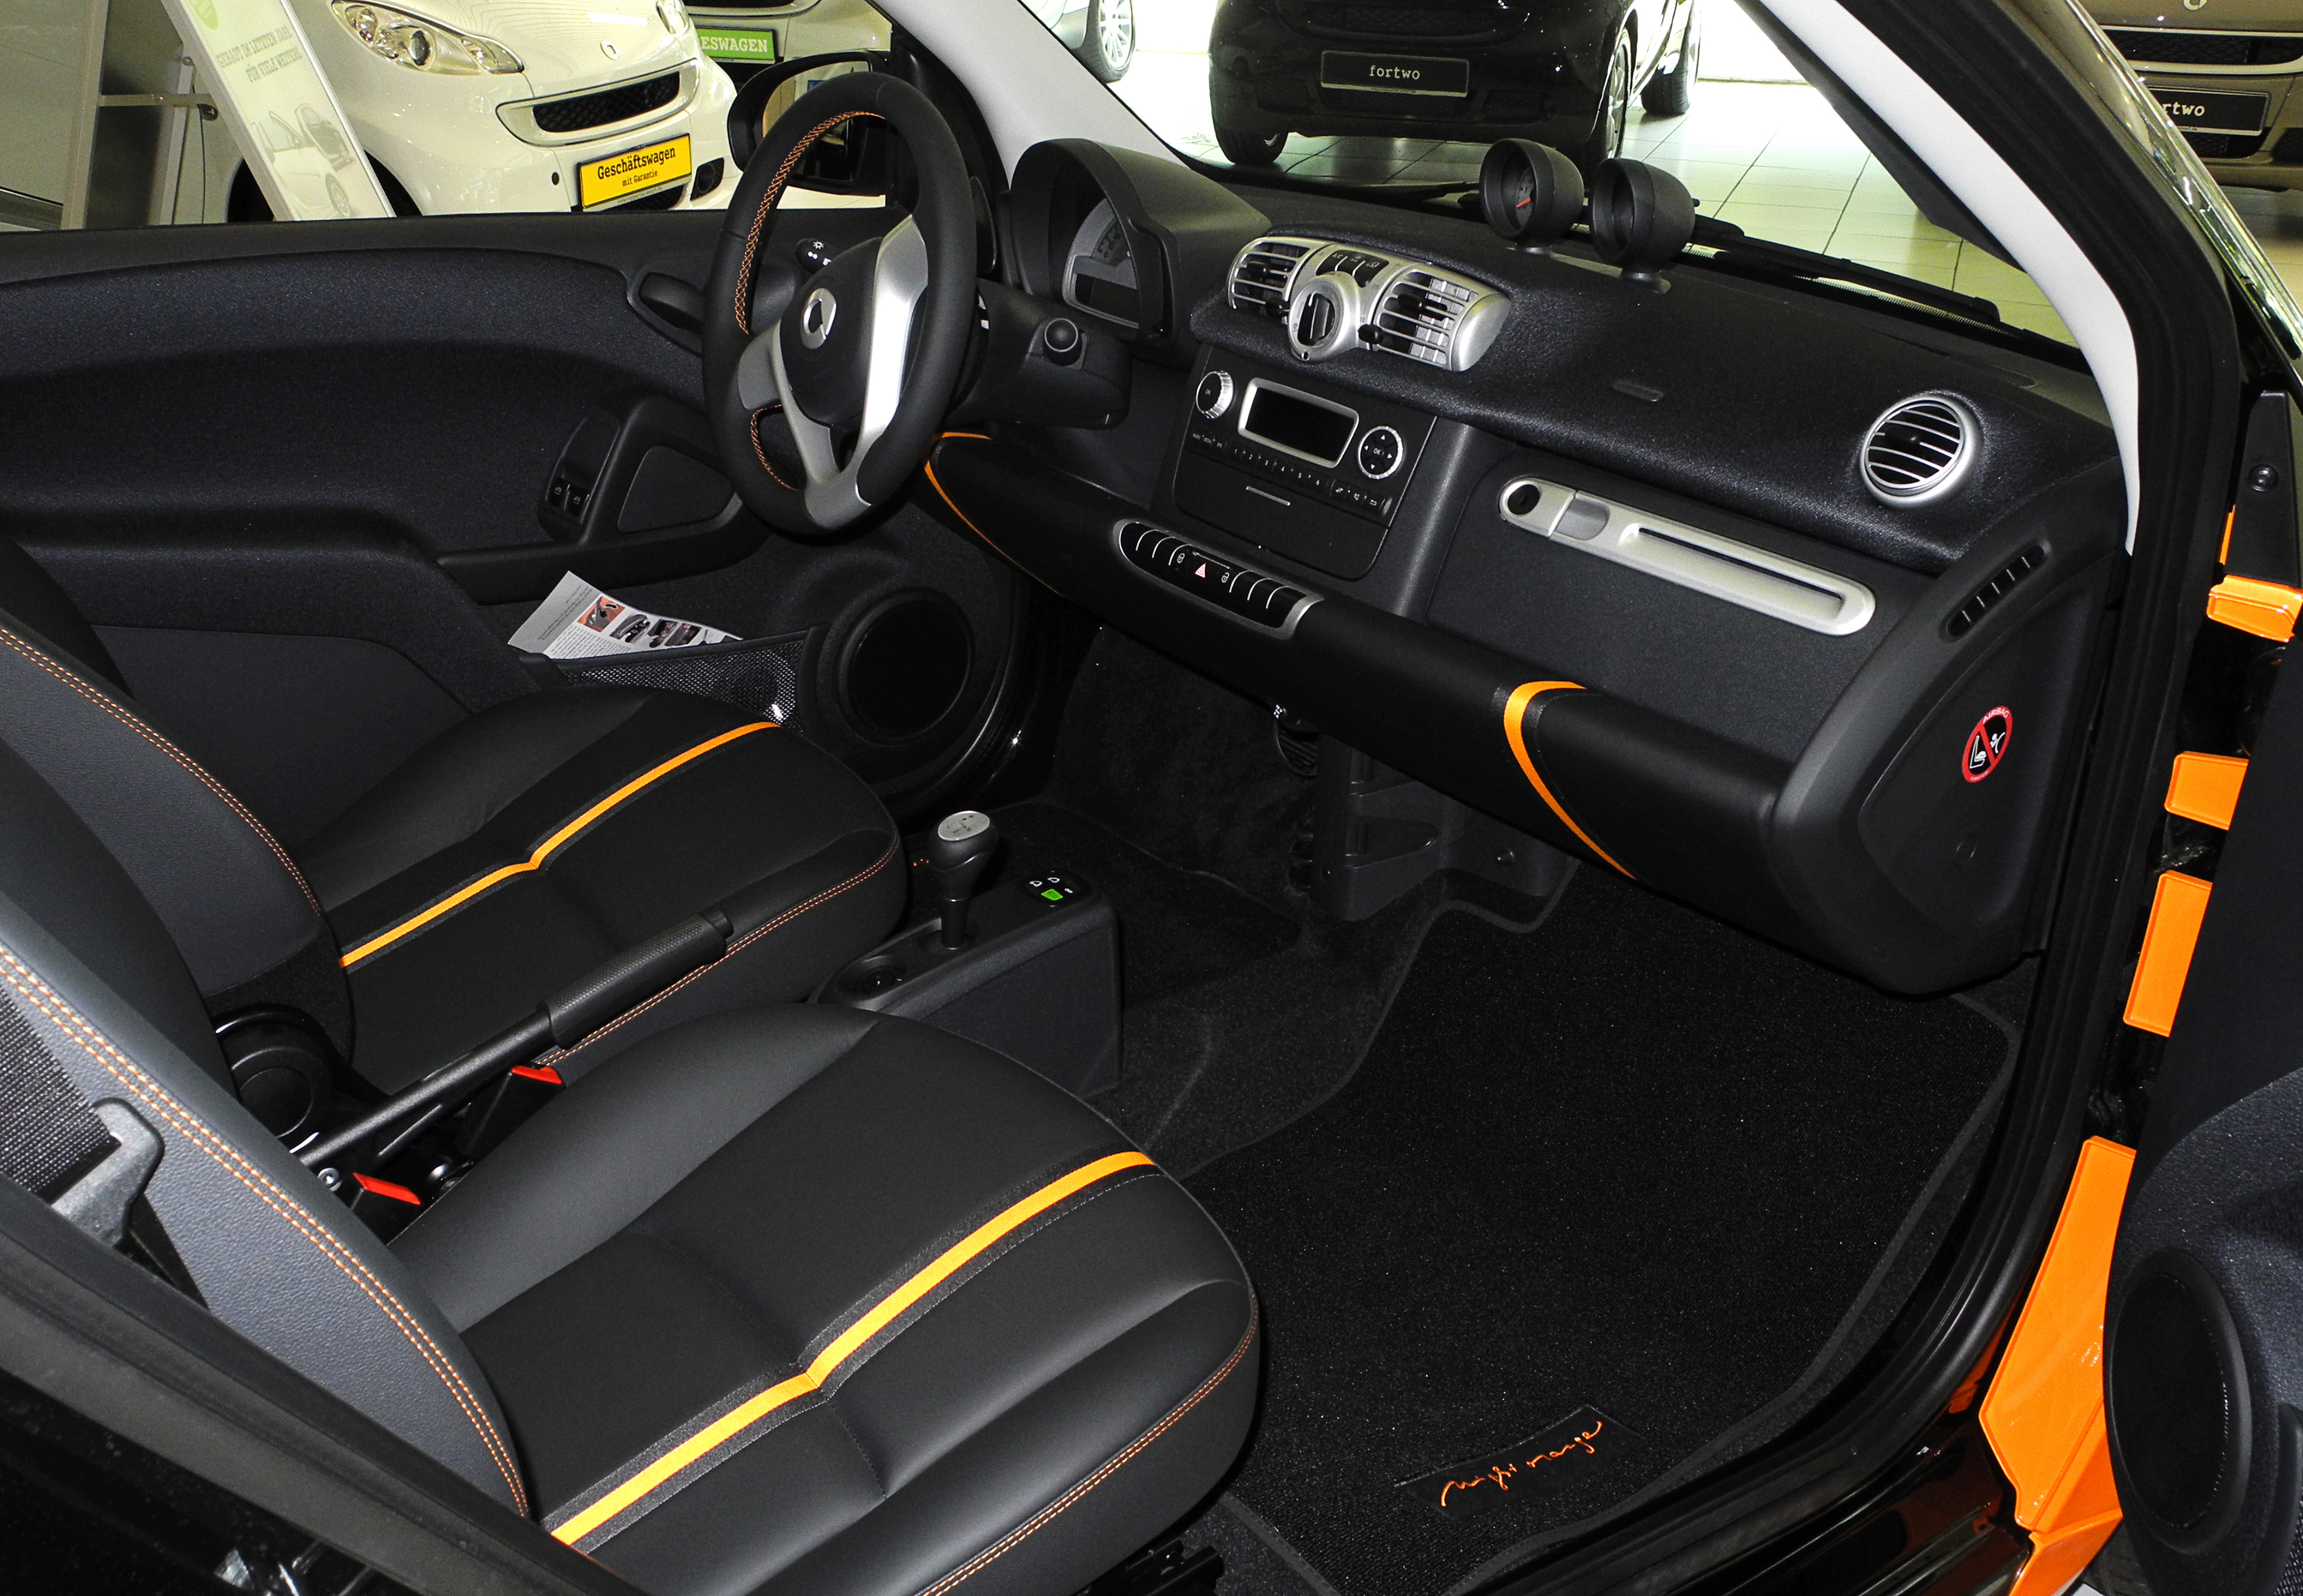 Smart fortwo mhd image #10